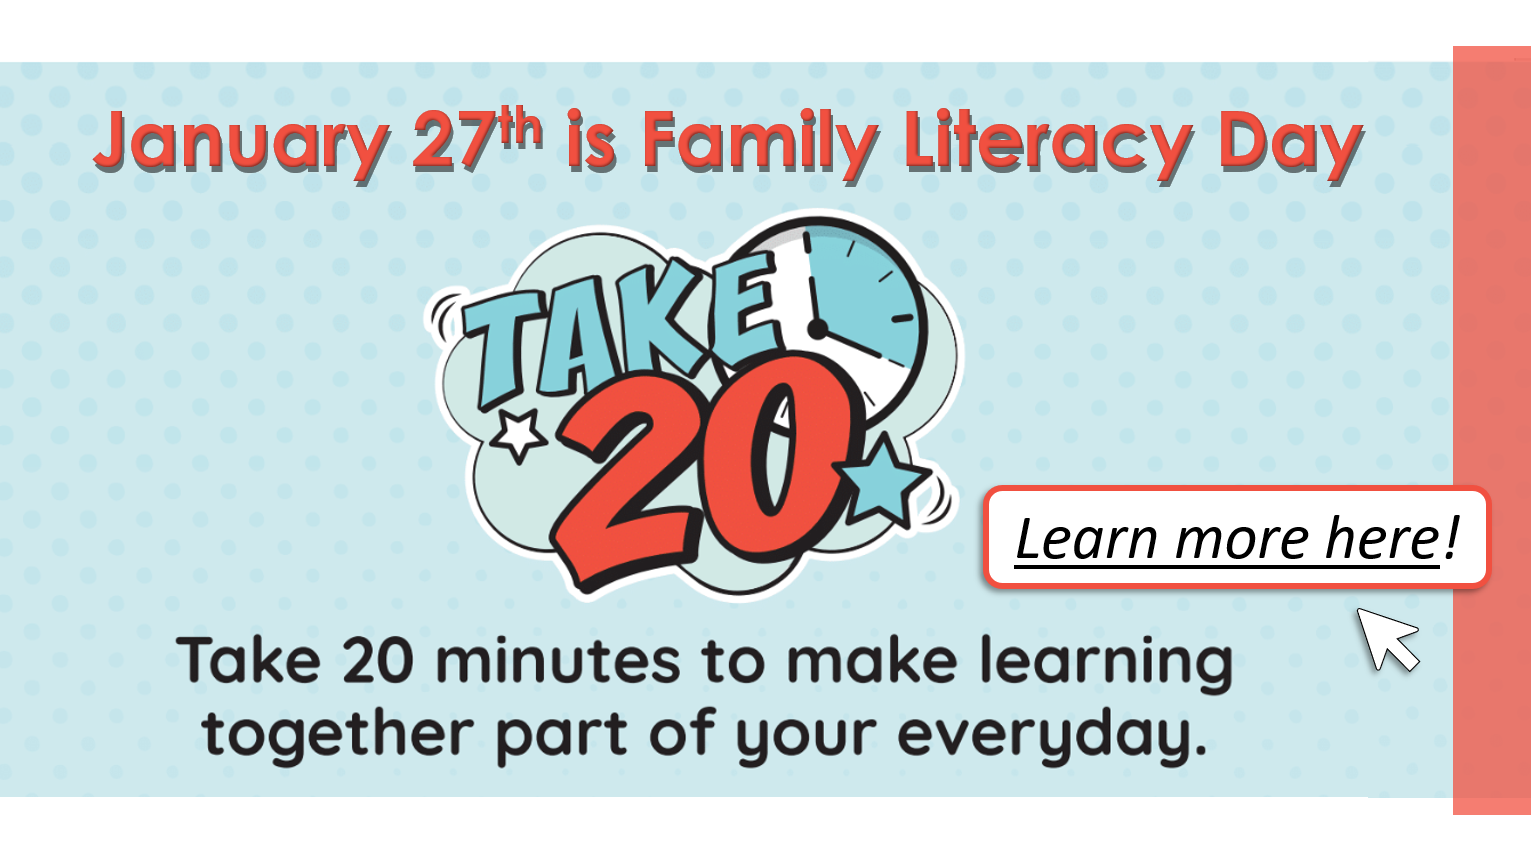 January 27th is Family Literacy Day 2020 - Take 20 in 2020